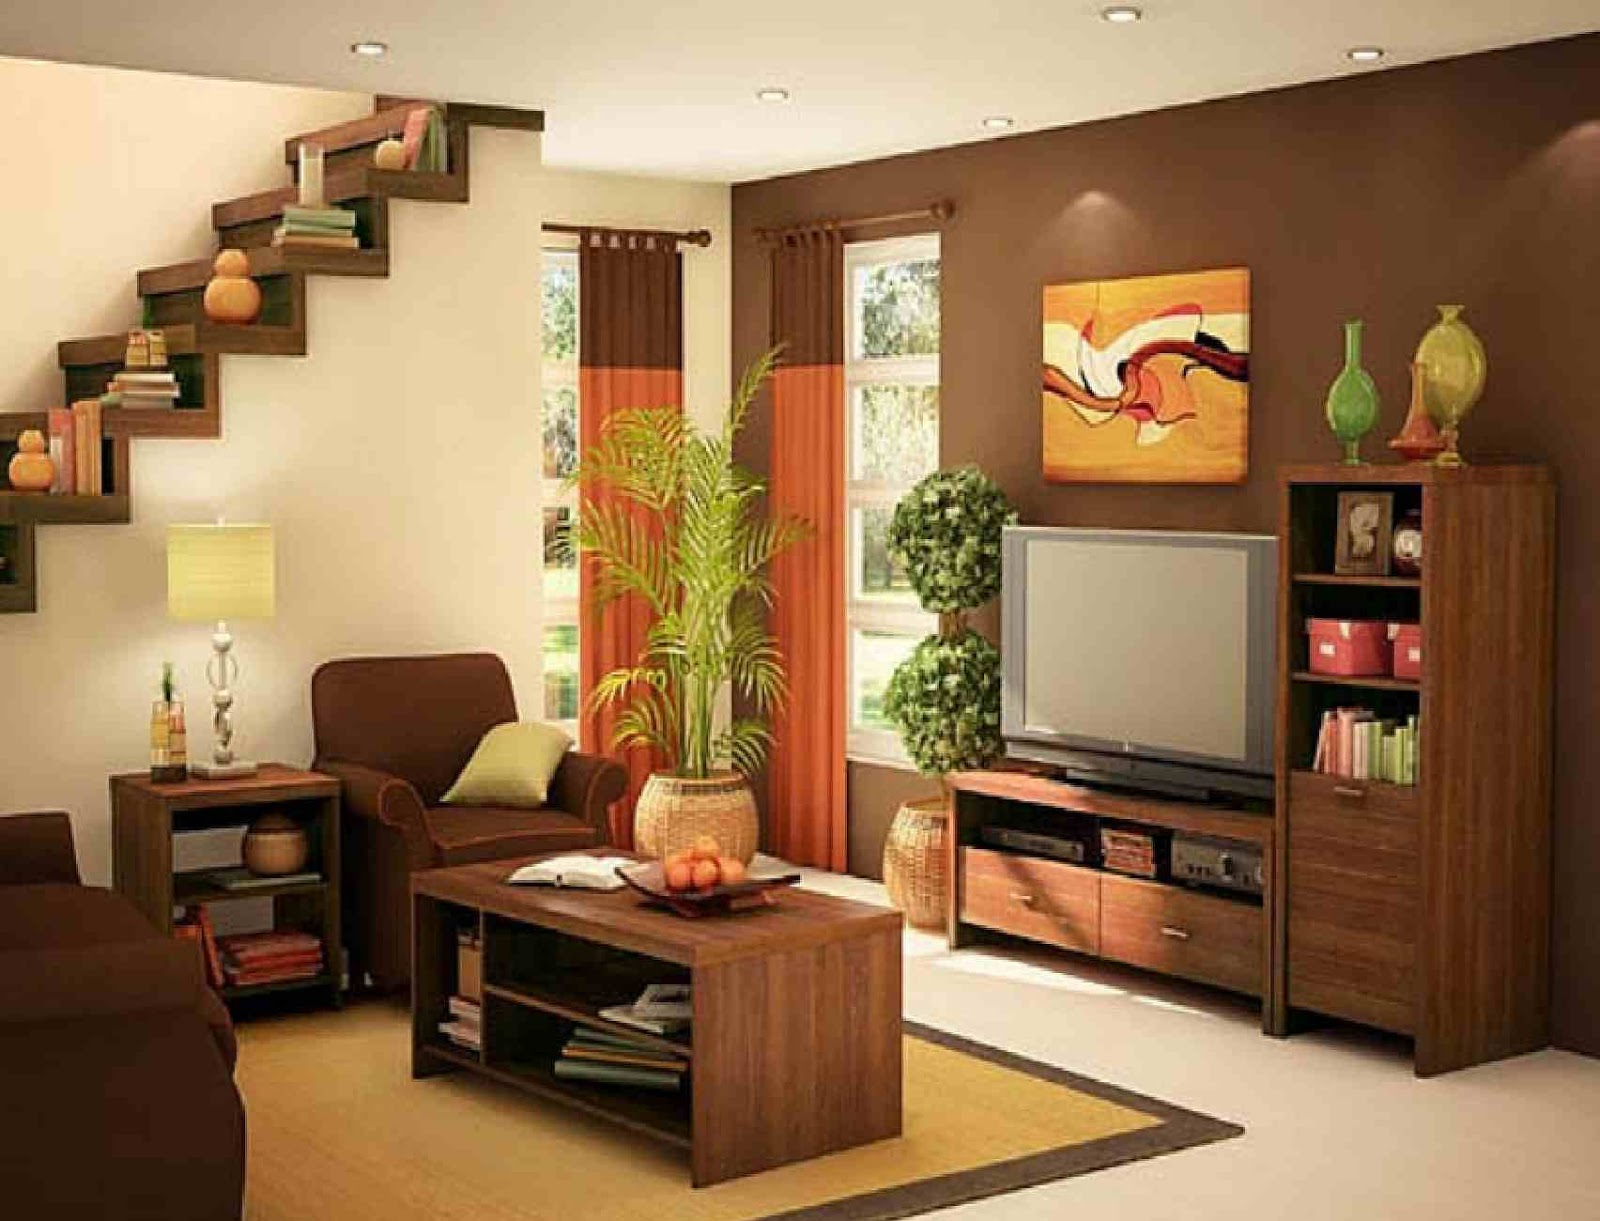 Home interior designs simple living room designs for Sitting room interior design